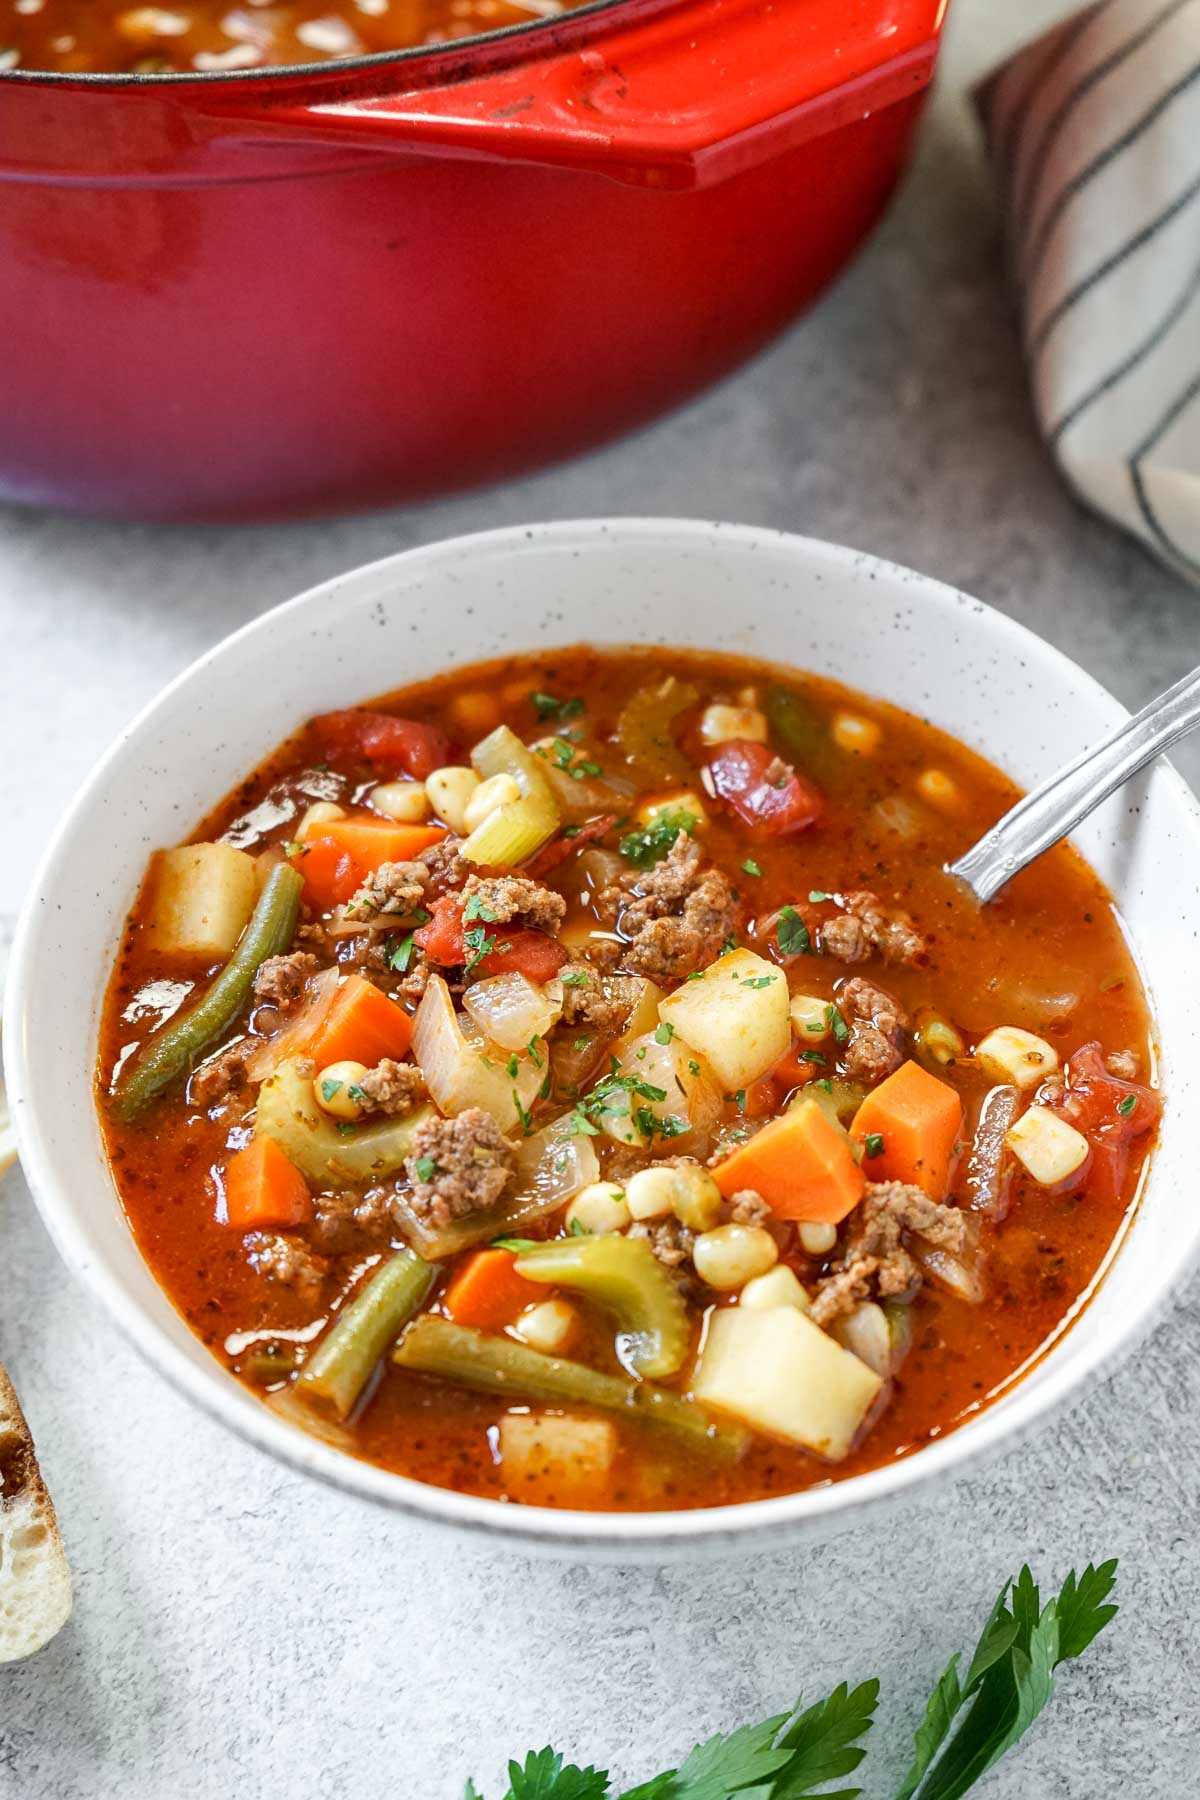 Vegetable Beef Soup in a bowl with a spoon and red pot in the background.